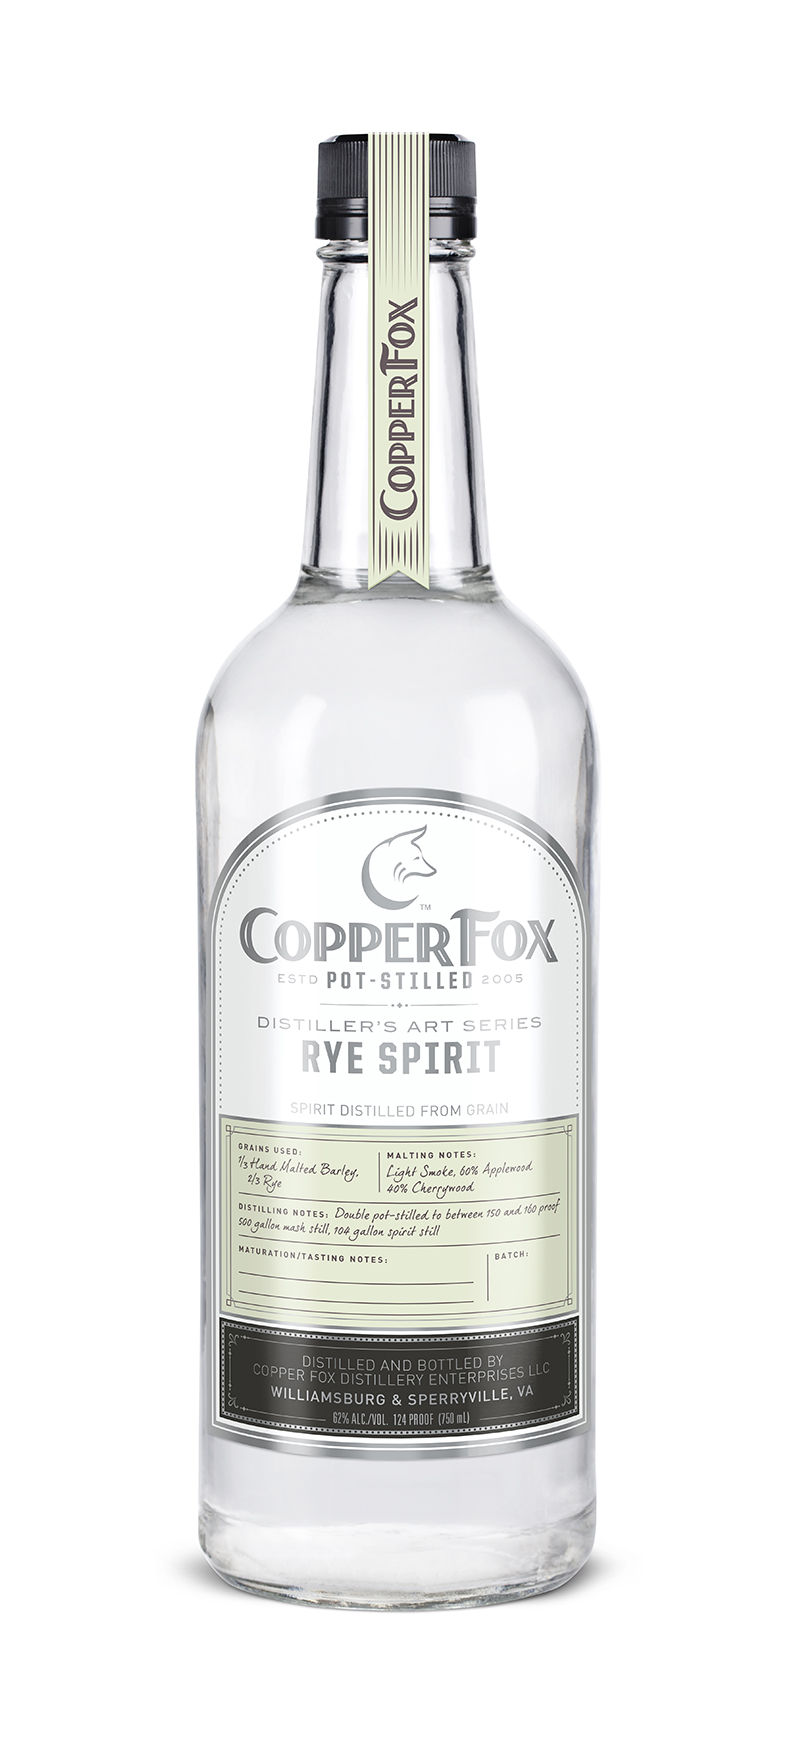 "Copper Fox rye spirit - Hand CraftedThe second release in our innovative ""Distiller's Art Series,"" this clear spirit is our Copper Fox Rye Whisky, bottled at barrel strength prior to aging. Our spirit is hand crafted from 2/3 Virginia rye and 1/3 Thoroughbred barley developed and grown locally, exclusively for Copper Fox Distillery.Unlike neutral grain spirits, which are distilled at 190 proof and above, our spirits are hand crafted and carefully distilled at just under 160 proof, utilizing a process which allows the complete essence and flavor of the rye and barley grains to come through. The Distiller's ""Art"" involves balancing the alcohol purity and the flavor elements from the source material—in our case, grain.Note: This is not to be confused with moonshine, which typically utilizes short cuts and lowest cost production methods, sacrificing quality and craft.A Marvelous FoundationEnjoy this Rye Spirit as a foundation for creating marvelous cocktails—substituting it for many other spirits in your favorite recipes. In addition, we invite you to replicate the aging process at home in our new lightly charred American white oak barrels. The cask strength (124 proof) spirit is the best strength to optimize the reaction of spirit and wood.‹ Previous Back to Gallery Next ›"